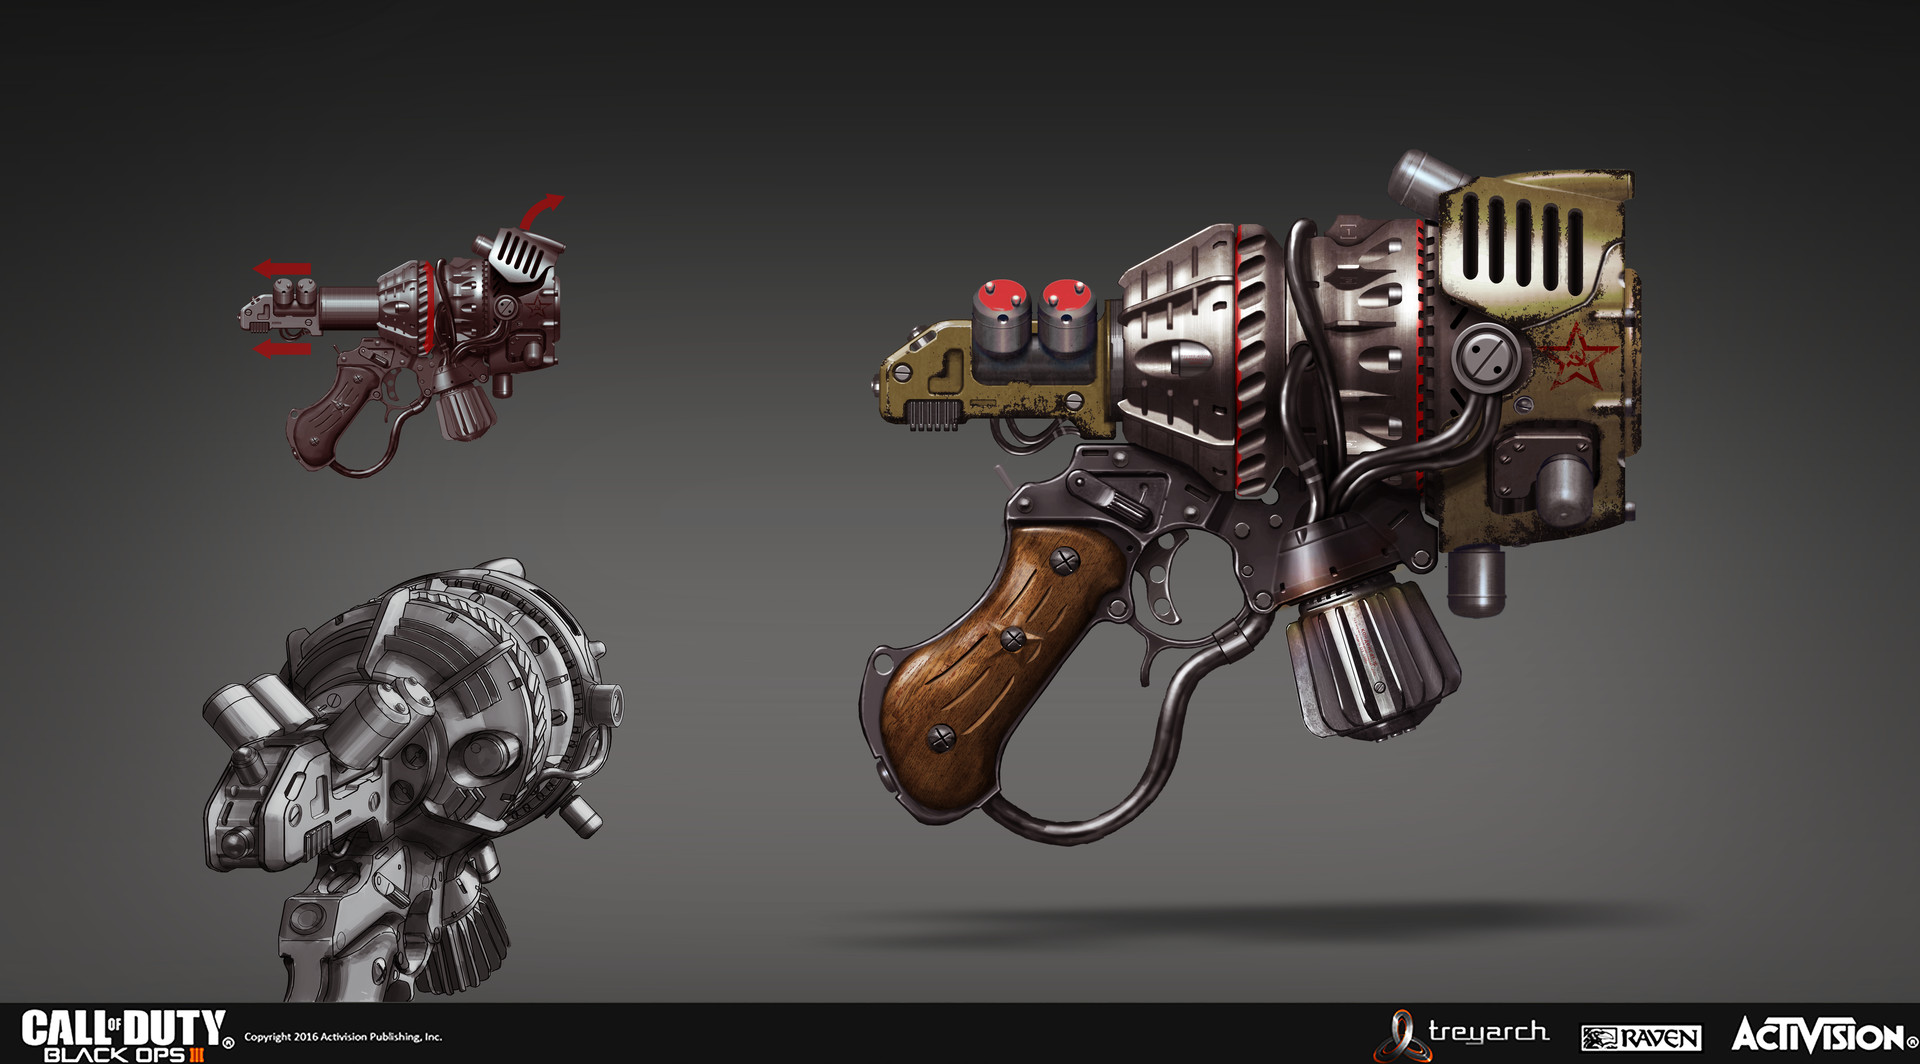 ArtStation - Call Of Duty Black Ops 3 zombie mode Raygun